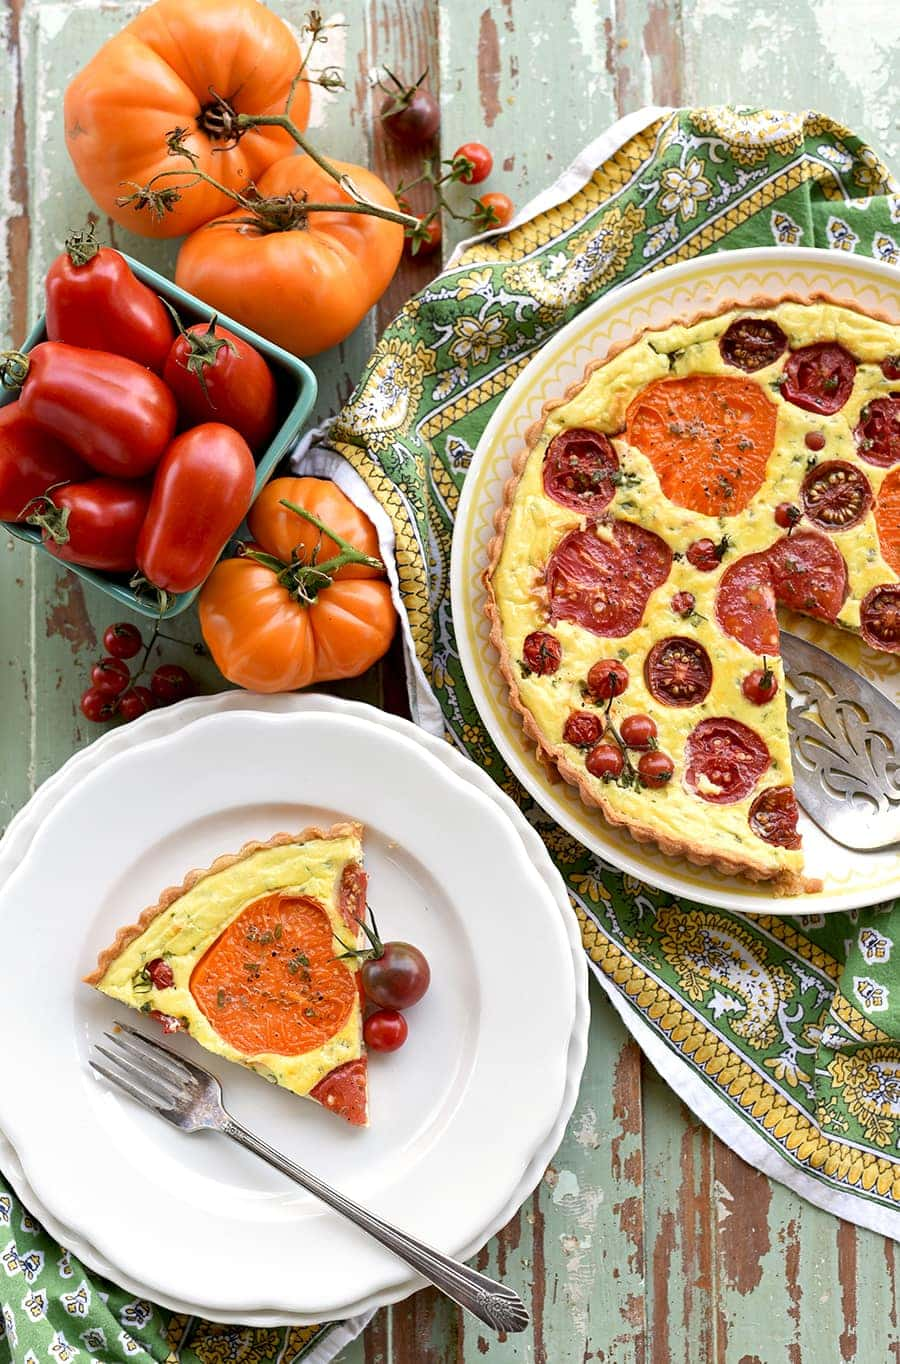 Heirloom Tomato Tart 1246 Web - Heirloom Tomato Tart